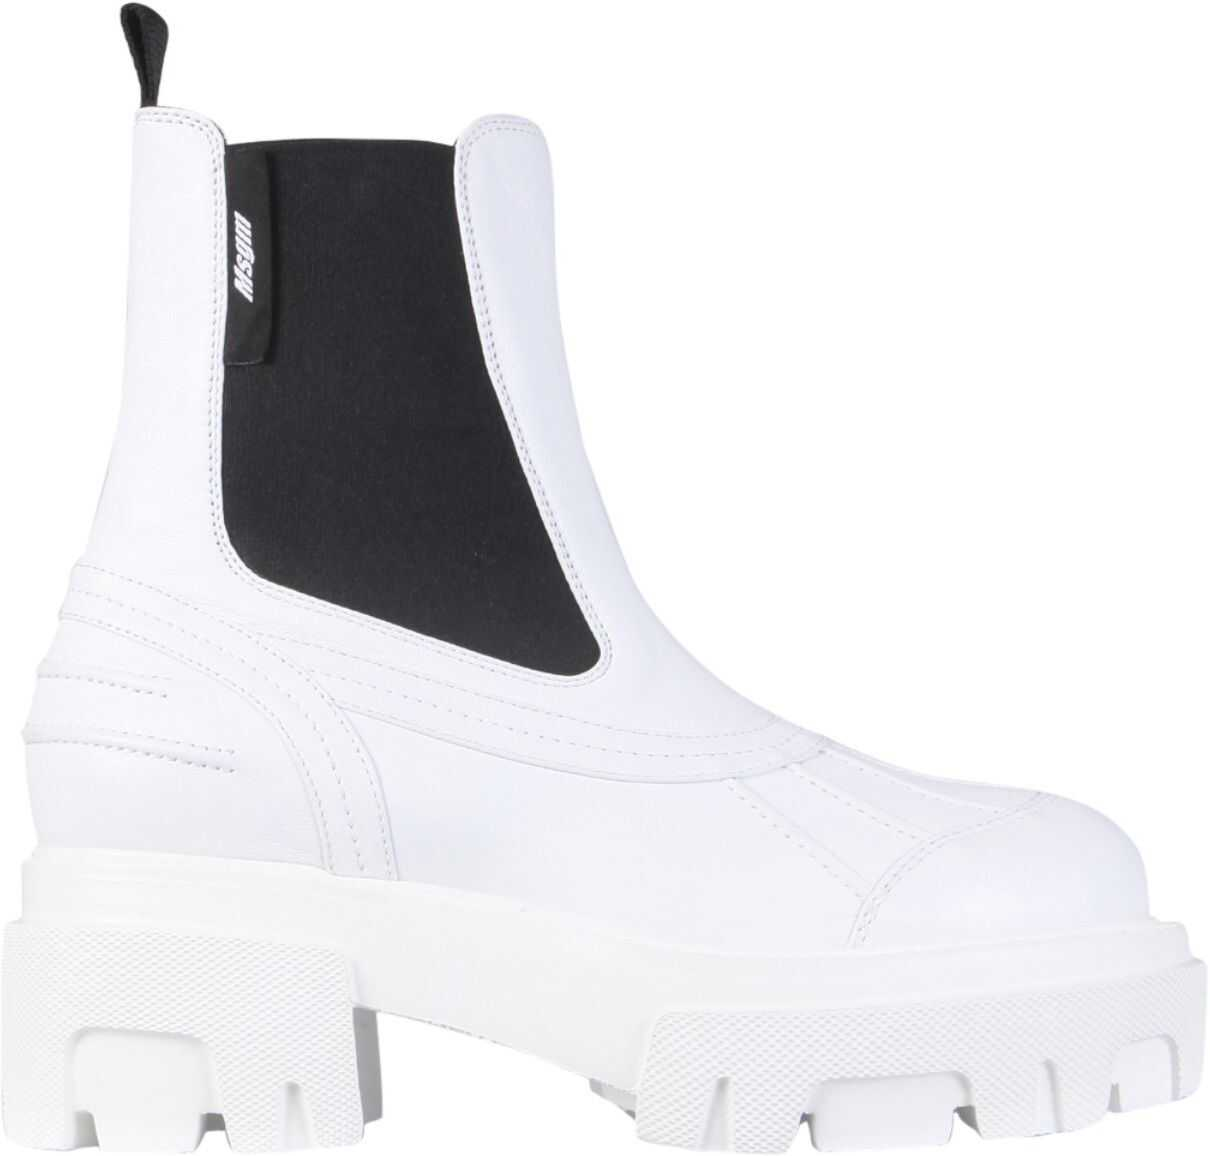 MSGM Leather Boots 3042MDS631_11401 WHITE imagine b-mall.ro